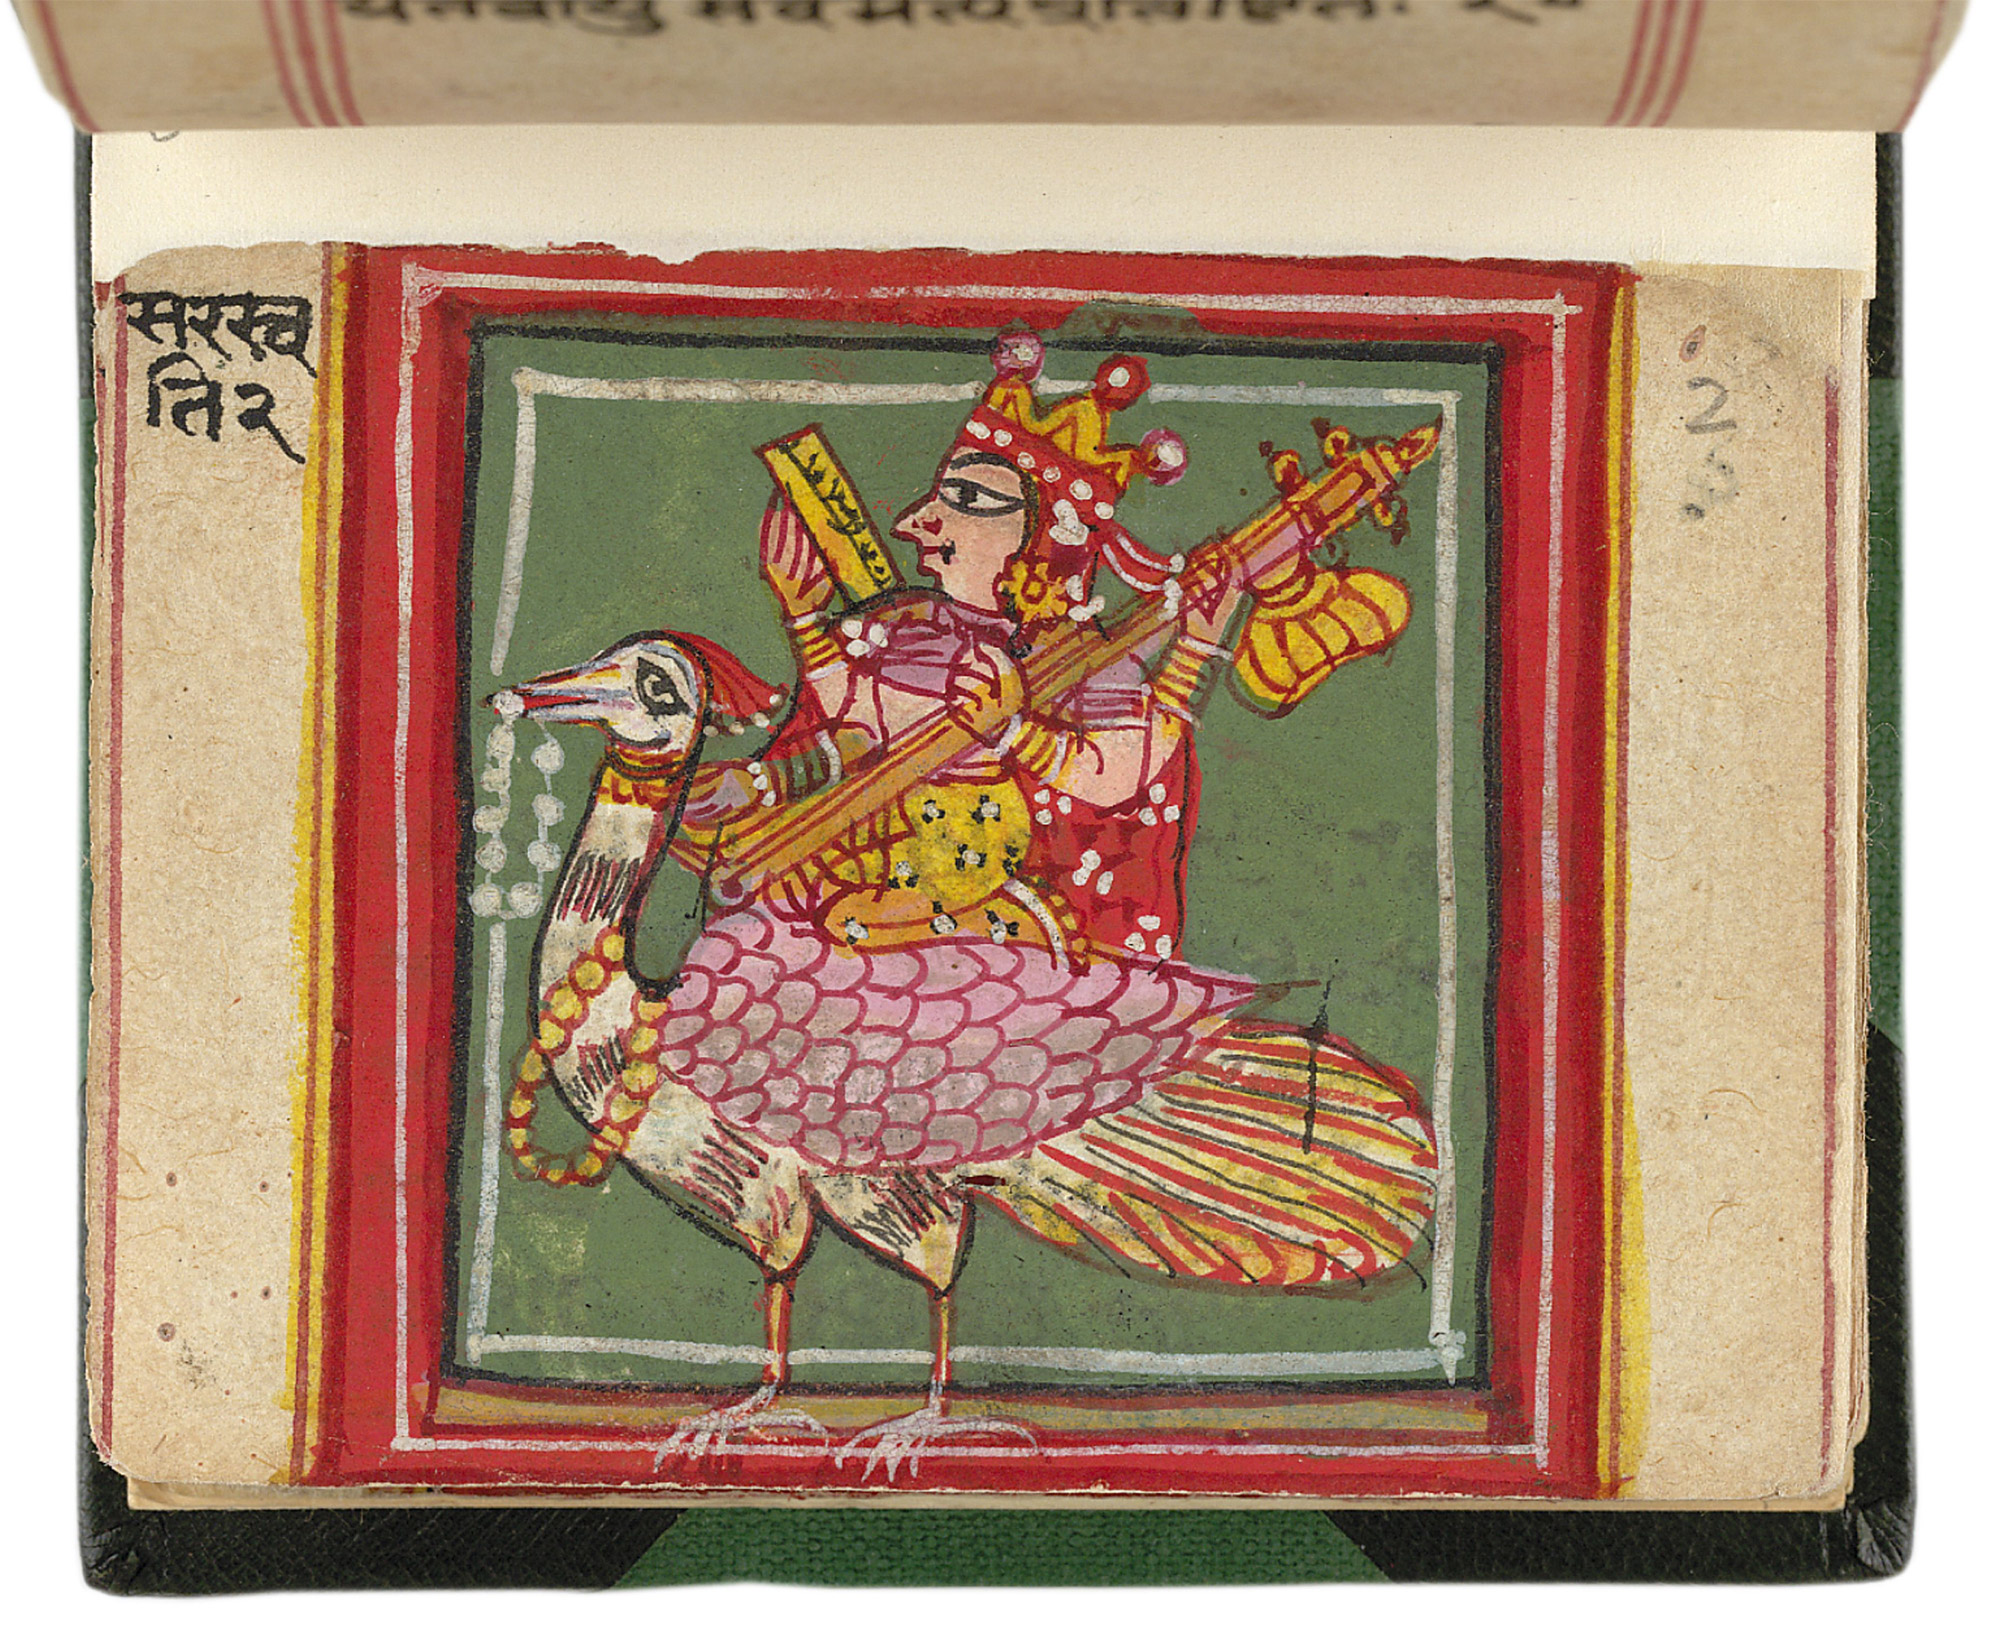 A depiction of Sri Saraswati, goddess of learning and music, playing an aveena as she rides a peacock